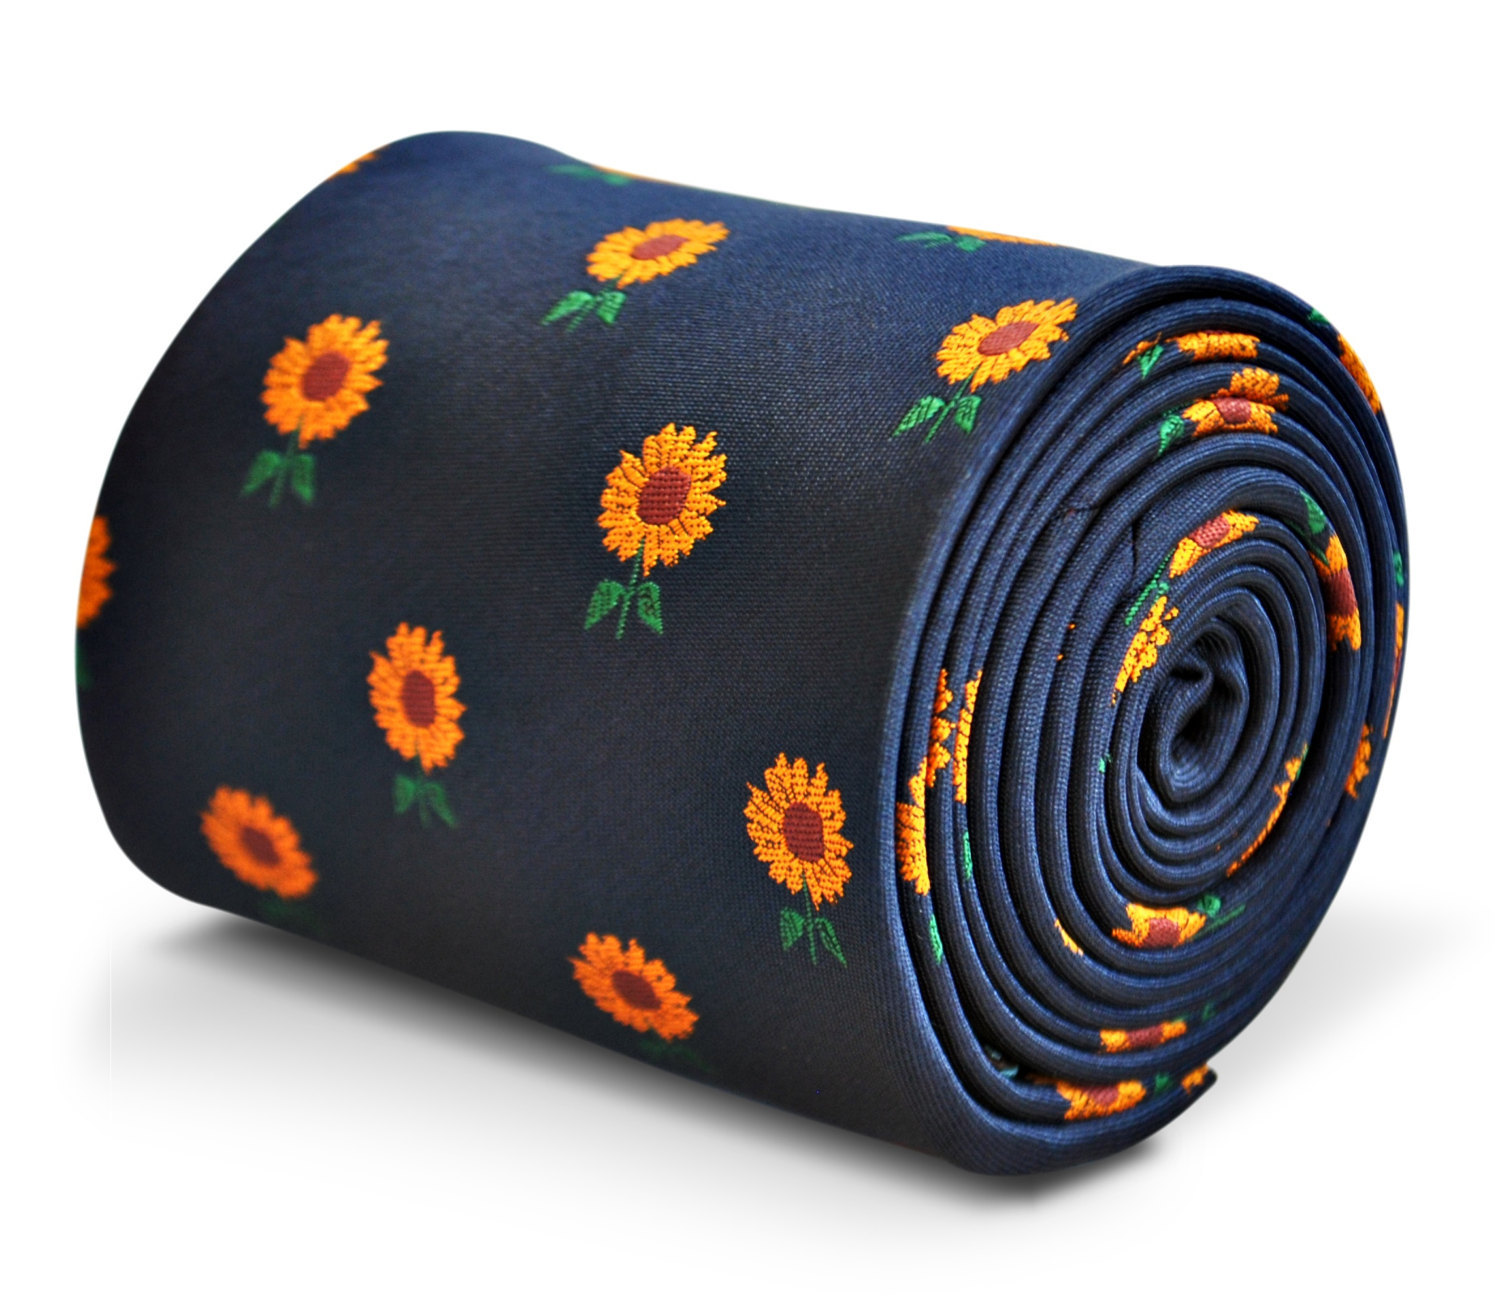 navy blue tie with sunflower design with signature floral design to the rear by